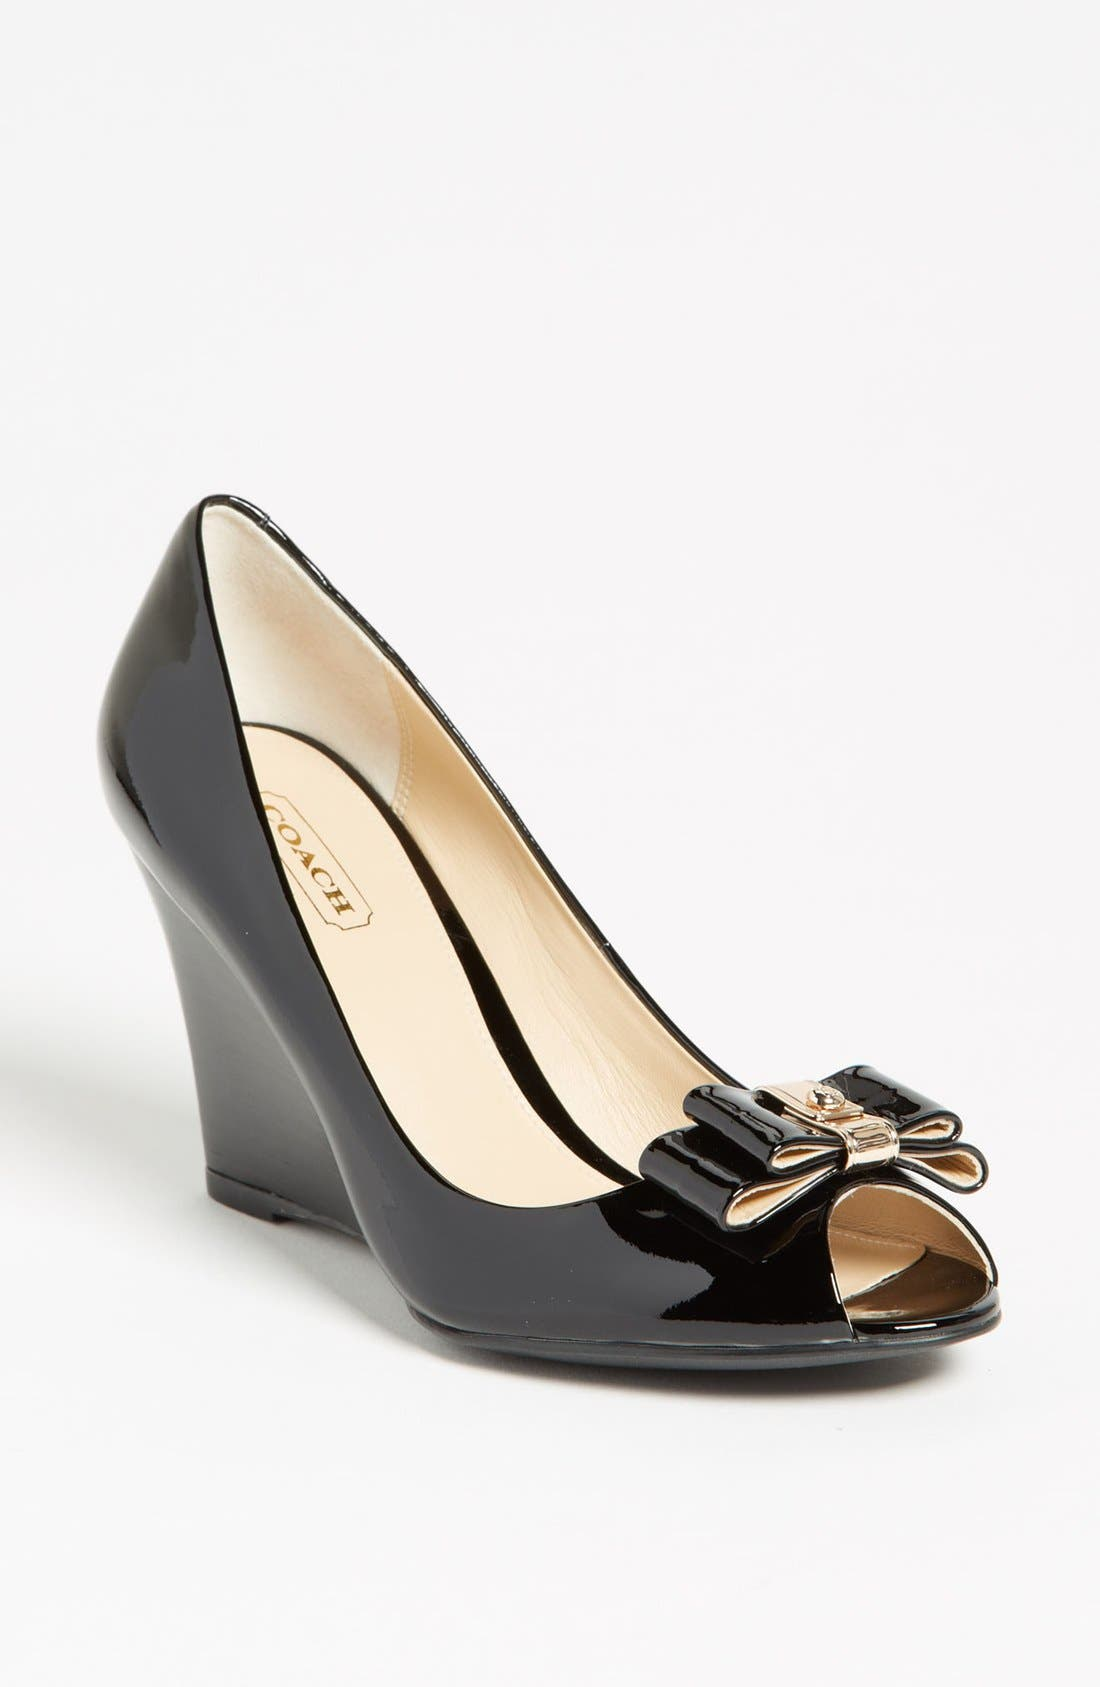 Main Image - COACH 'Emma' Pump